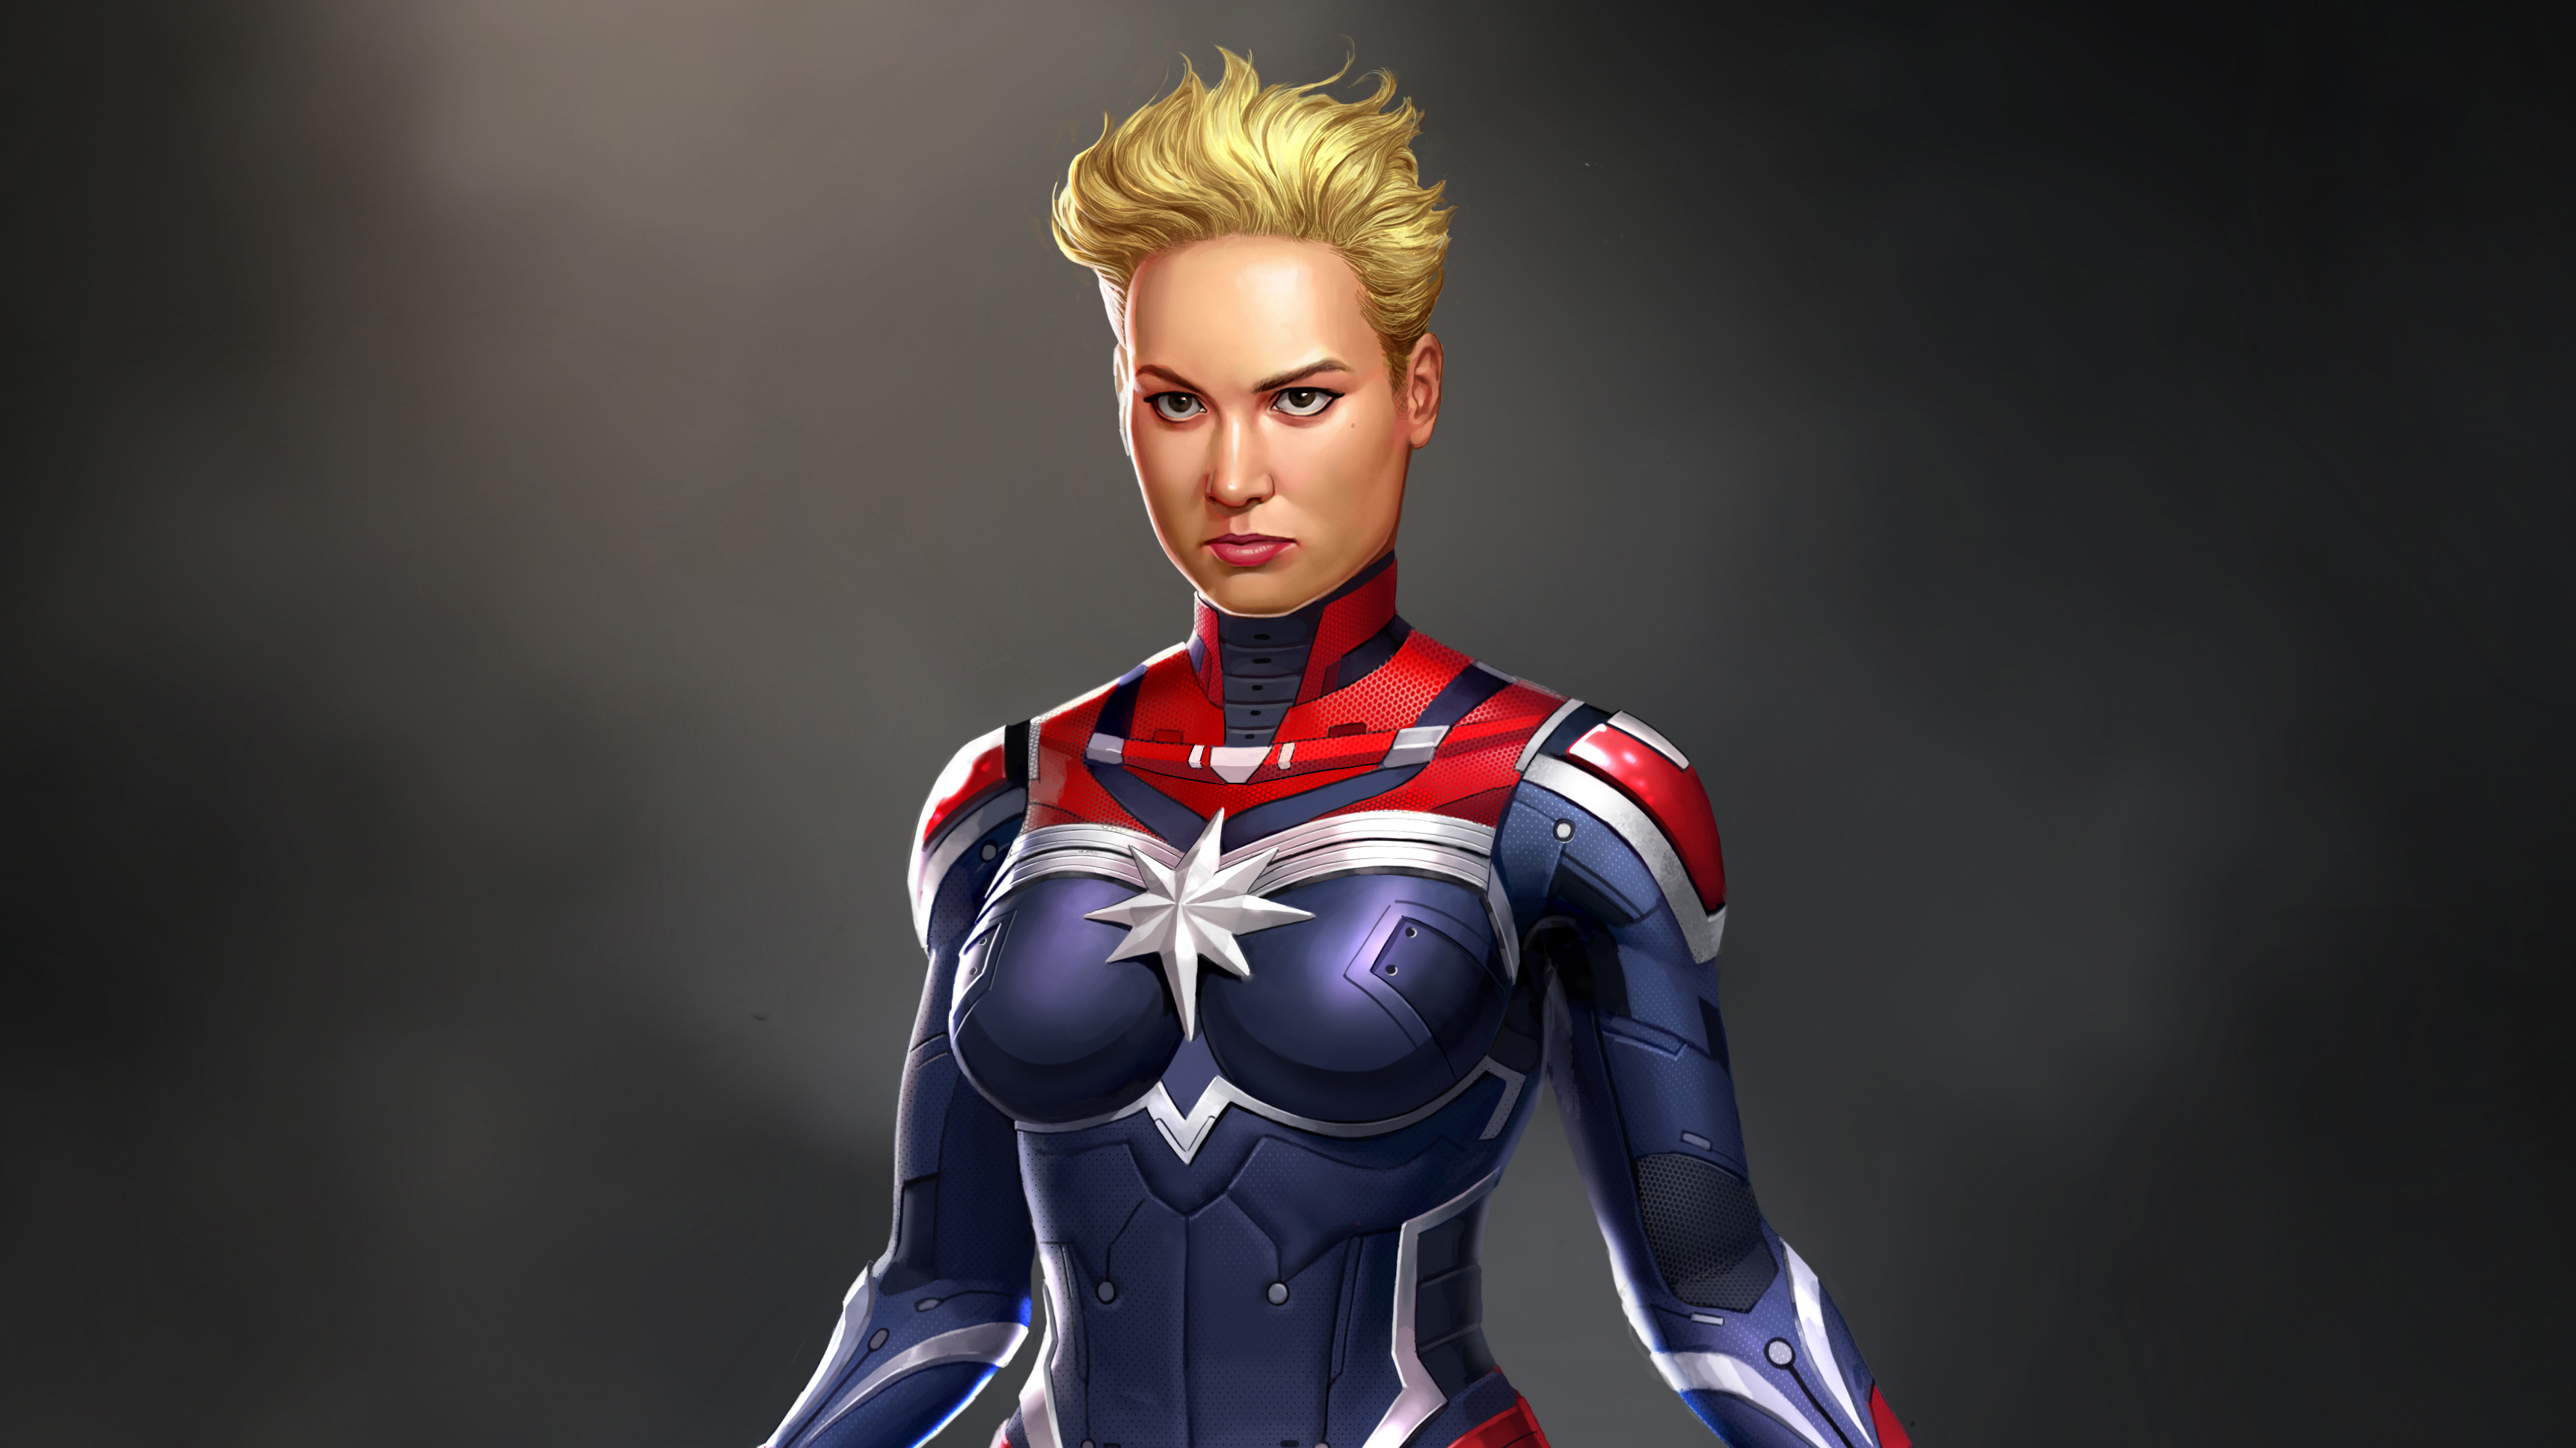 Captain Marvel Fantasy Art Wallpapers Hd Desktop And: 640x960 Captain Marvel Digital Art IPhone 4, IPhone 4S HD